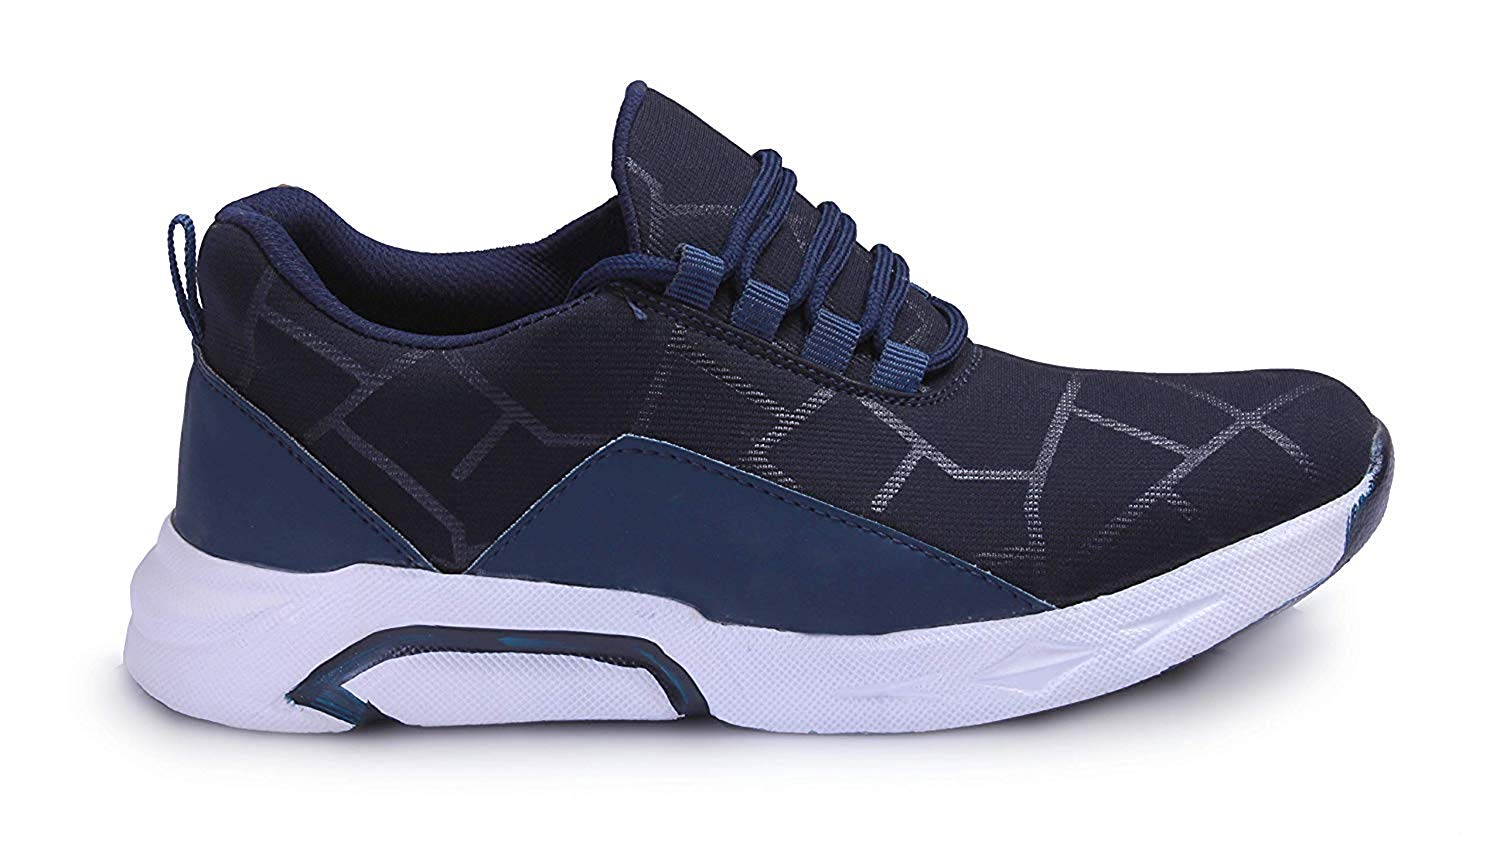 Raysfield Men's Blue Sports  Running Styles Shoes Blue_871 (Blue,6_10,8 PAIR)